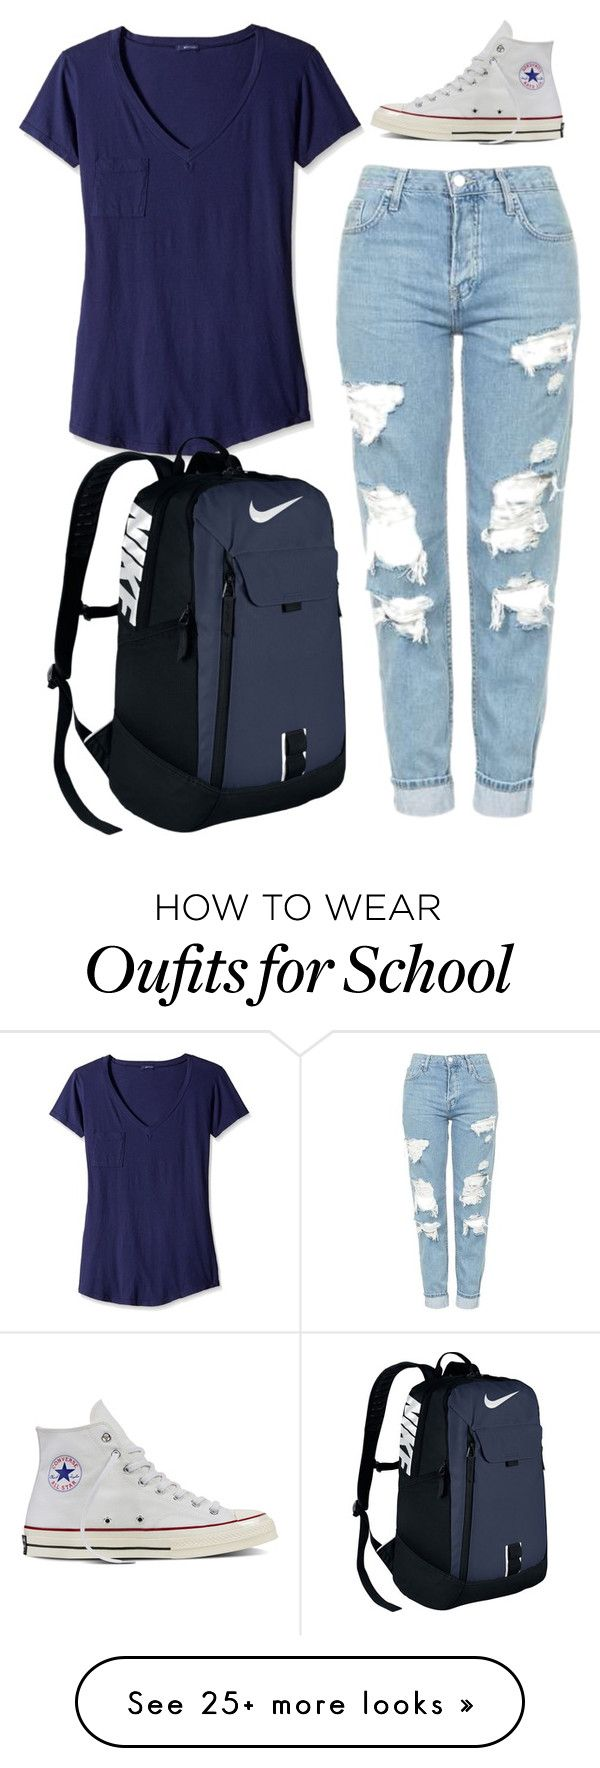 """clasic/comfortable outfit to go to the univ/school"" by guadalupebellorin on Polyvore featuring LAmade, Topshop, NIKE and Converse"